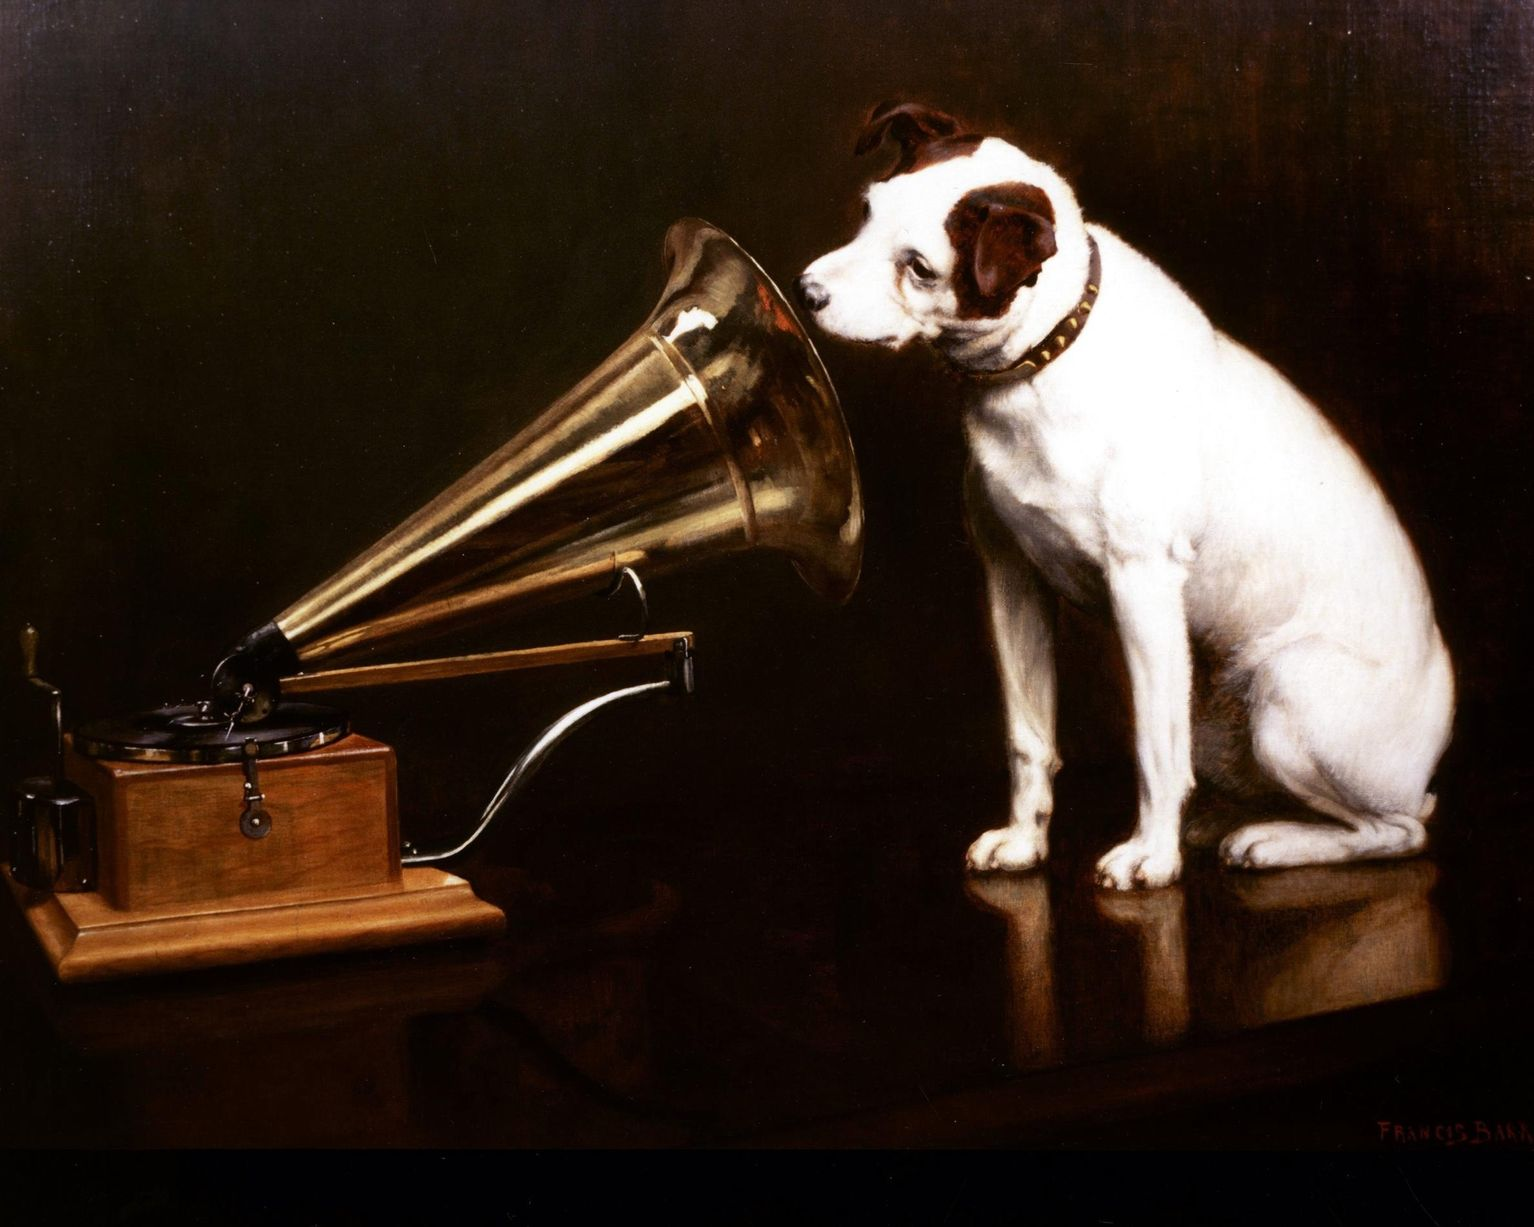 HIS MASTER'S VOICE (1919) by the artist Francis Barraud (1856 - 1924) Image courtesy of the EMI Group Archive Trust. © HMV is a recognised trademark hmv.com